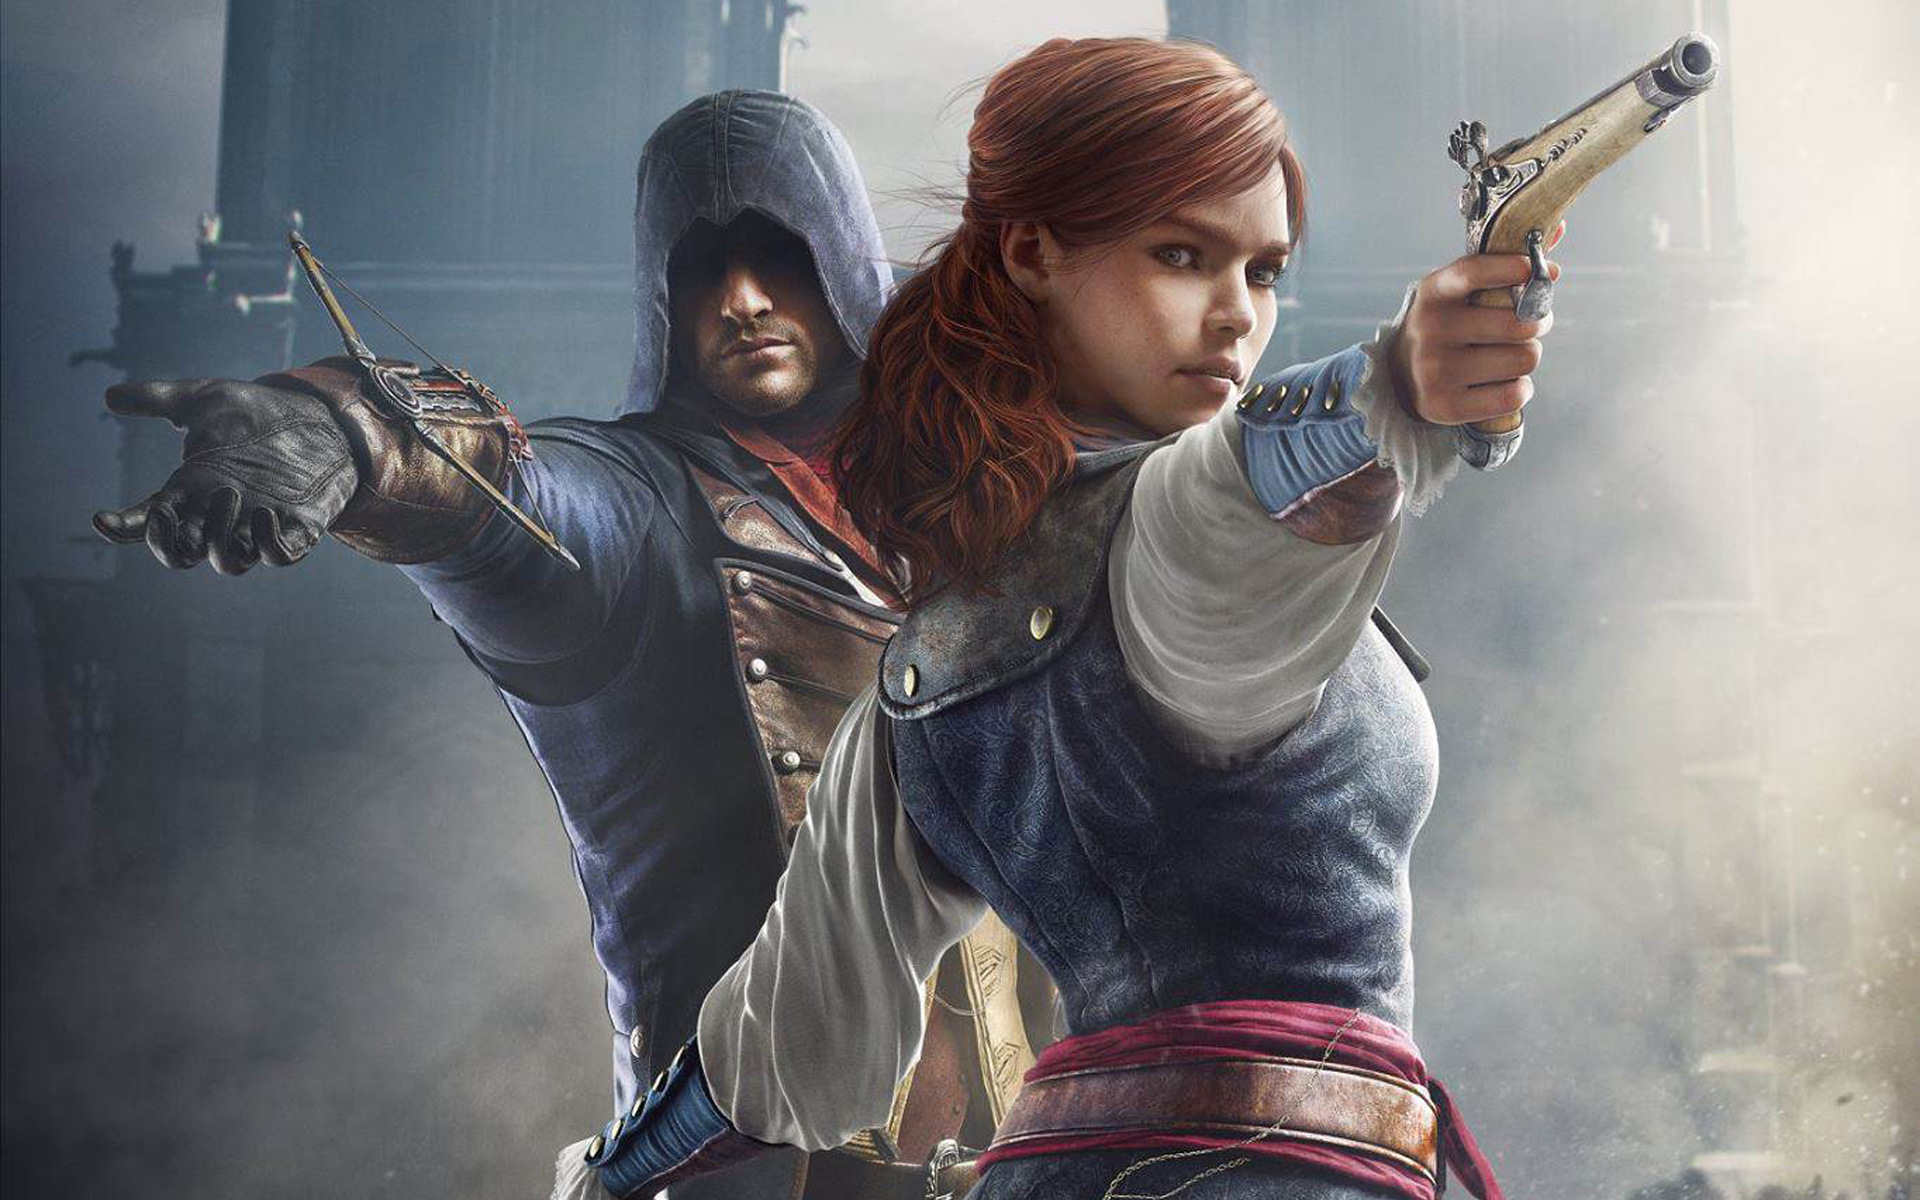 assassins-creed-unity-arno-and-elise-1920x1200.jpg